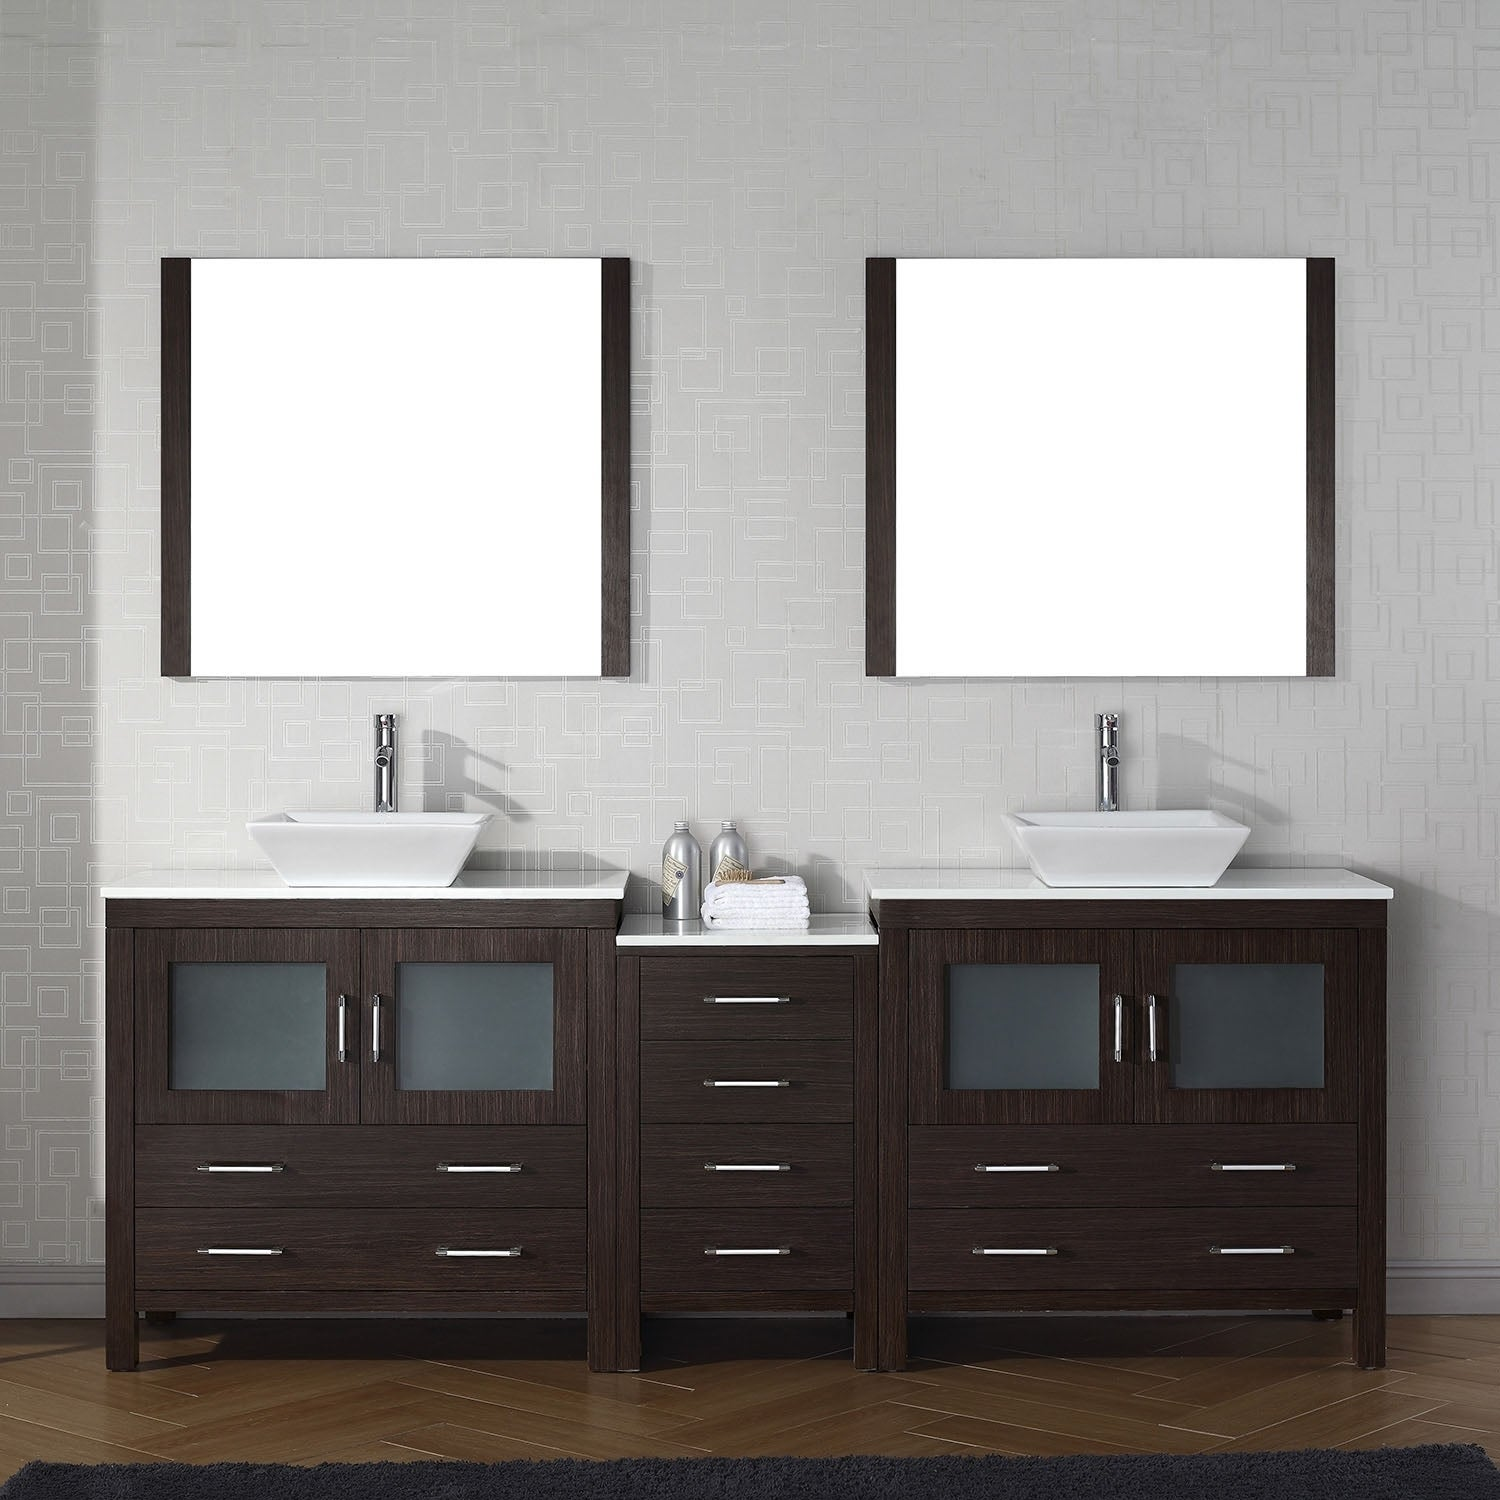 Virtu USA Dior 90-inch White Stone Double Bathroom Vanity Set with ...